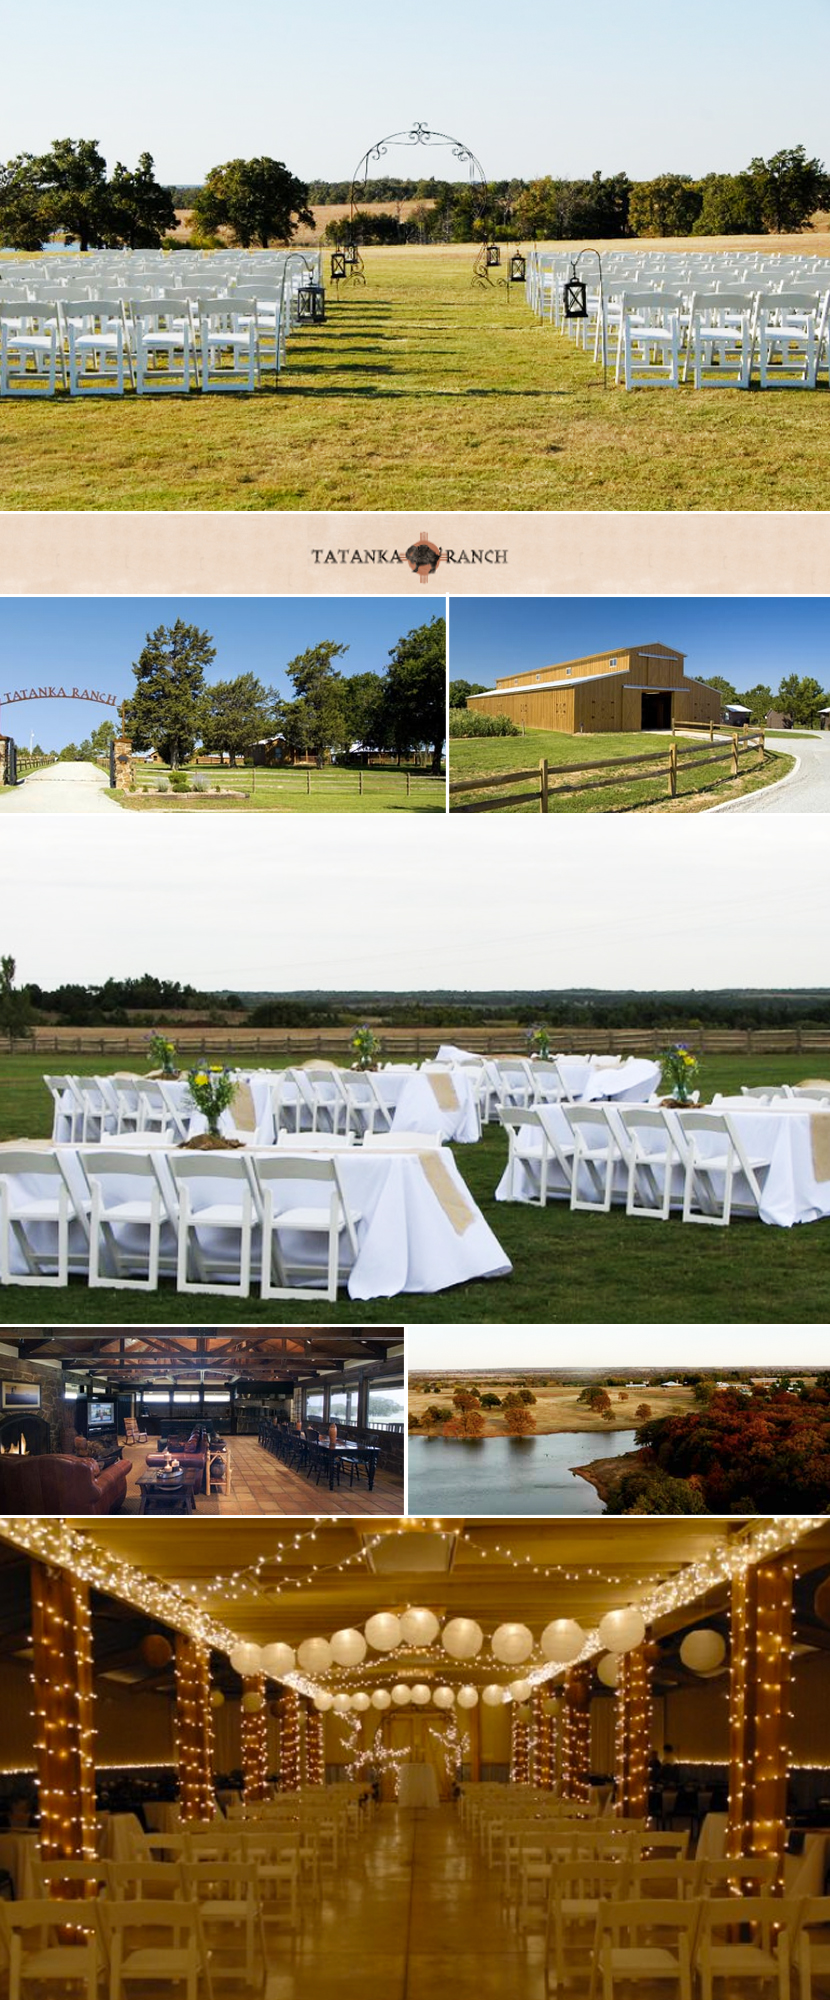 Oklahoma wedding and reception venue Tatanka Ranch